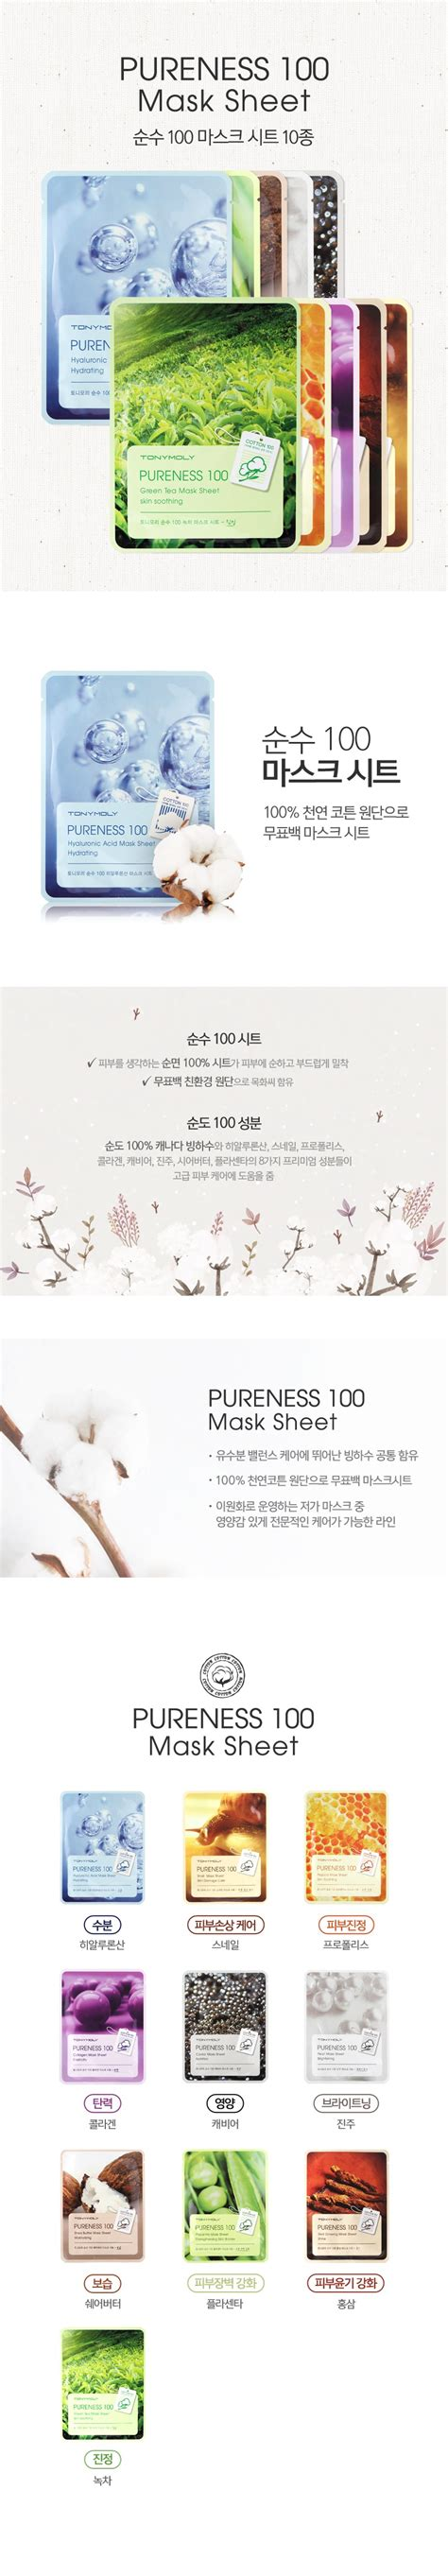 Tony Moly Pureness Pearl Brightening Mask tony moly pureness 100 mask sheet korean cosmetic shop malaysia